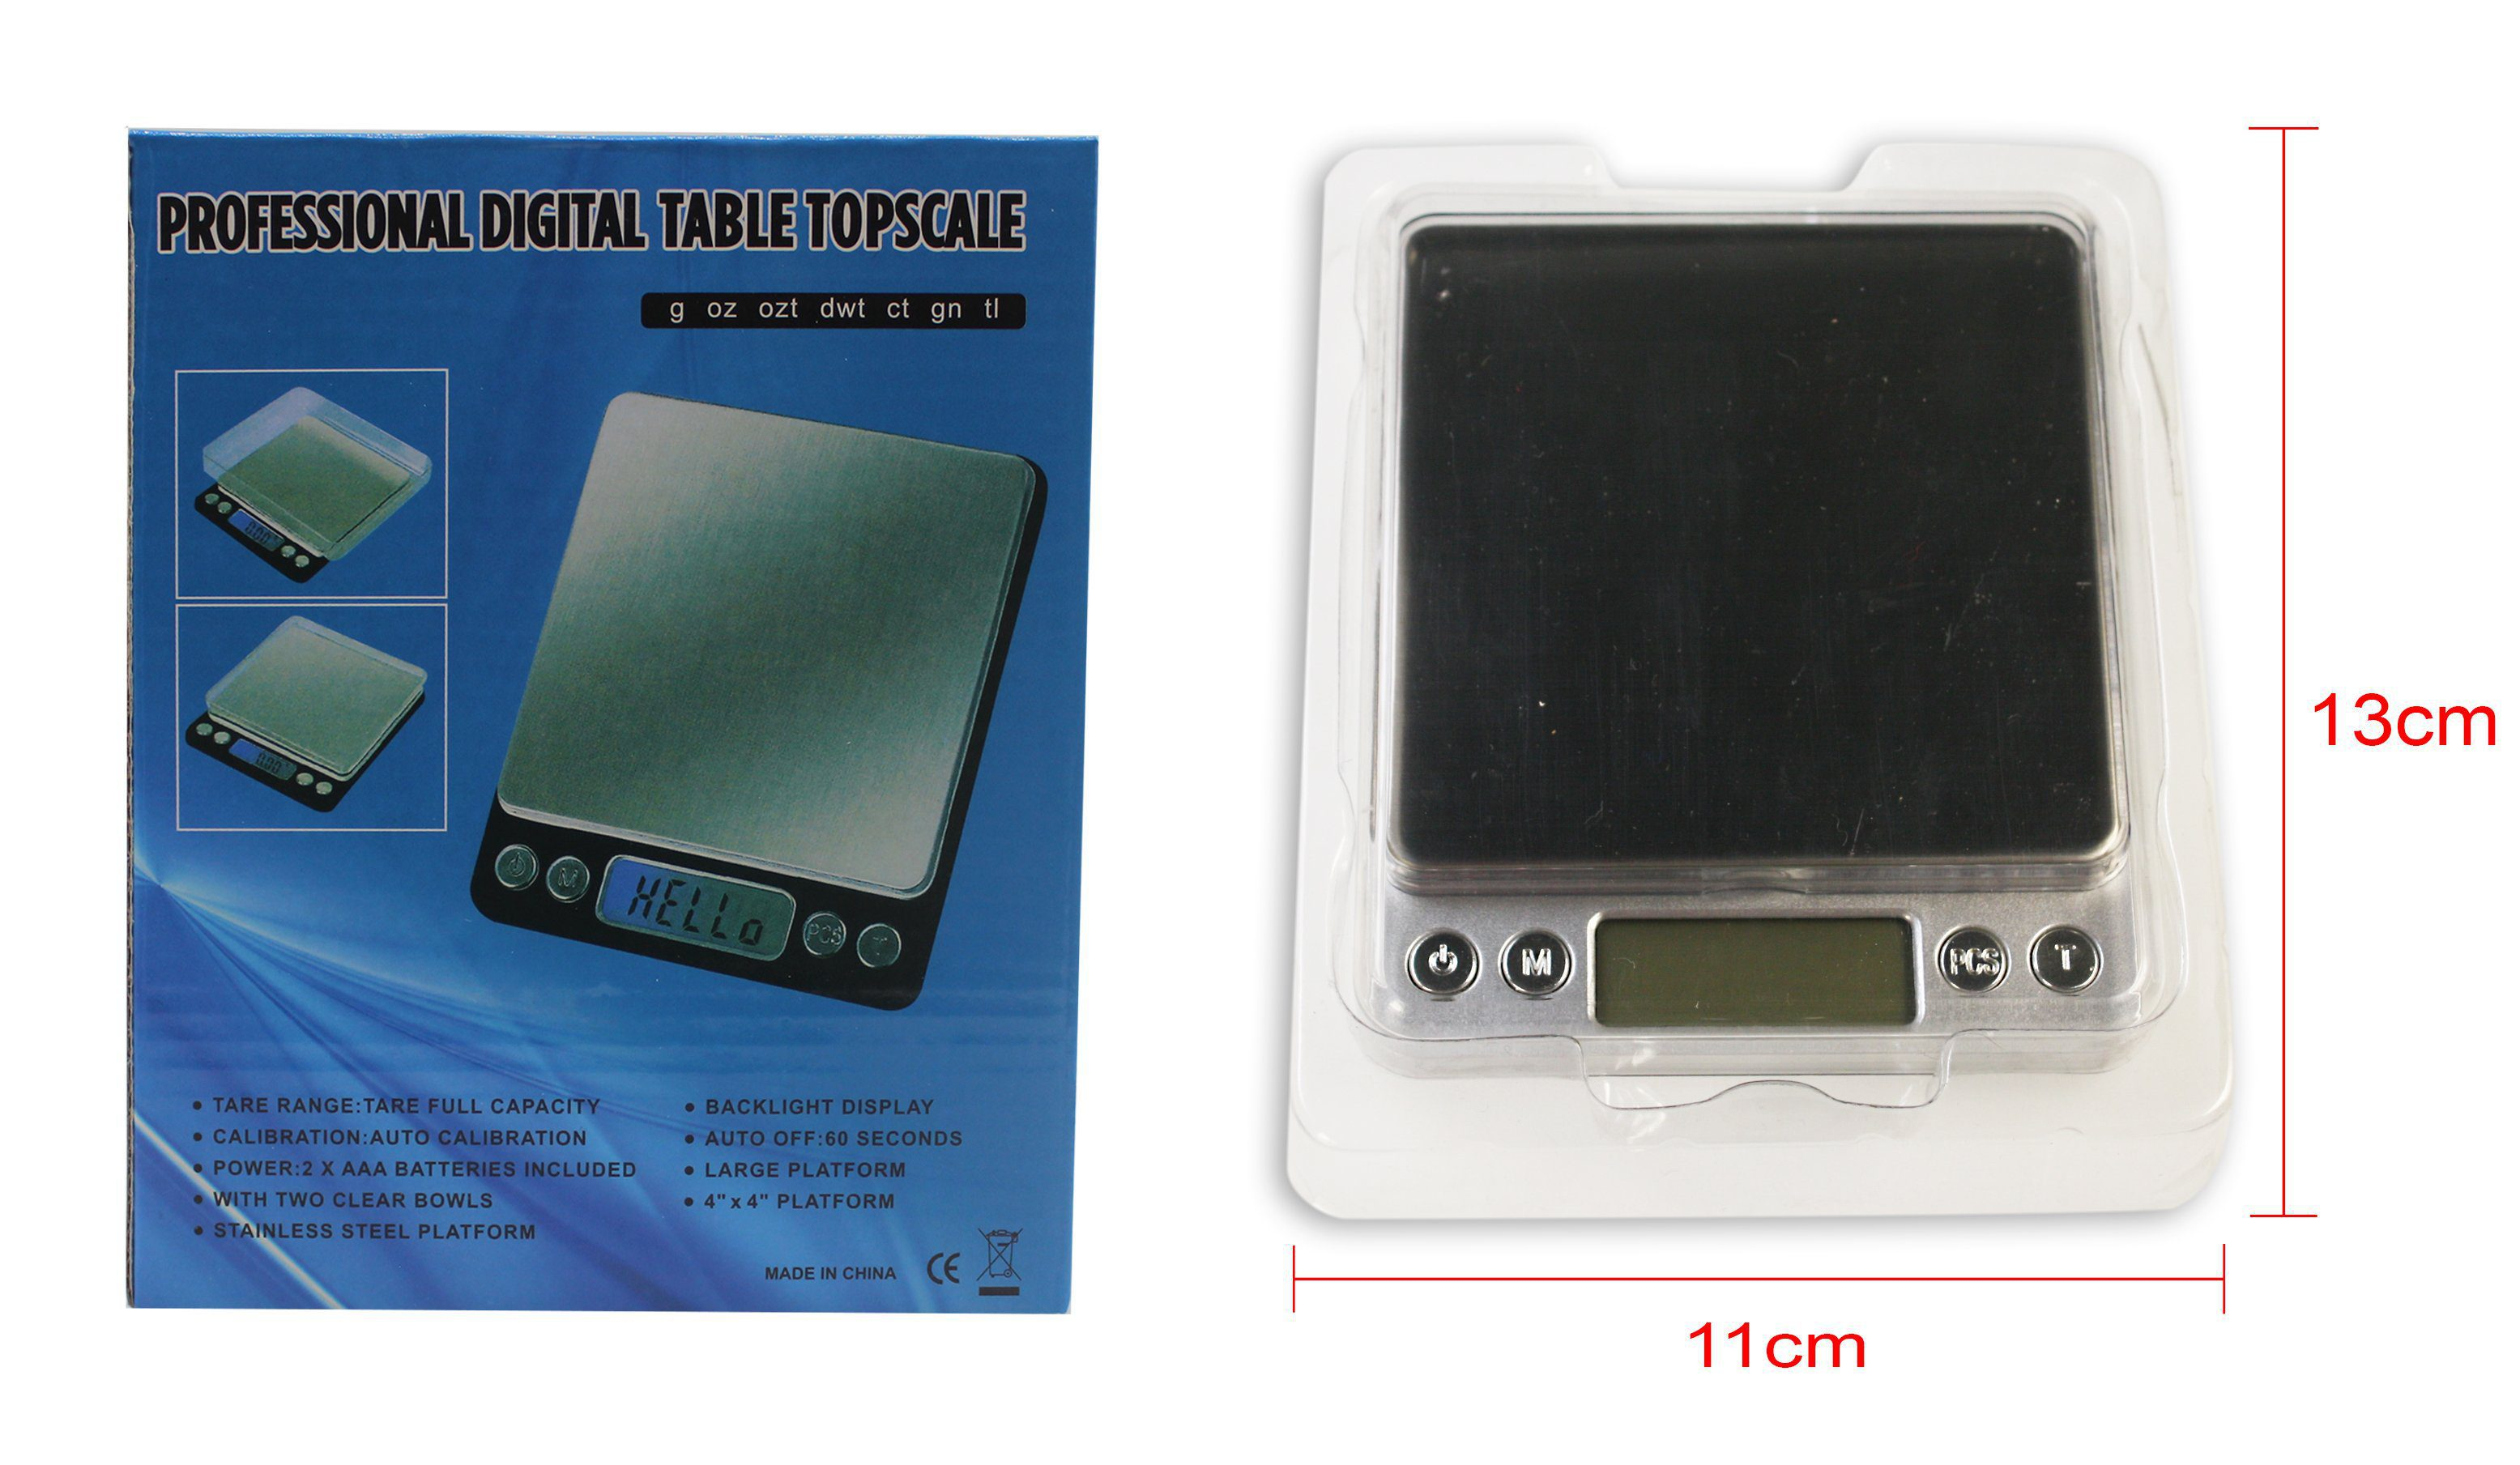 Professional Digital Scale 500g/0.01g